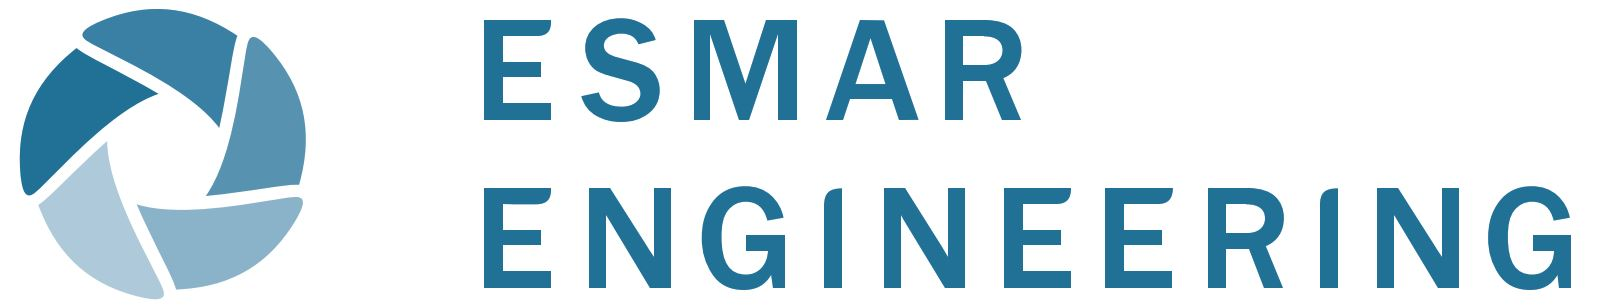 Esmar Engineering